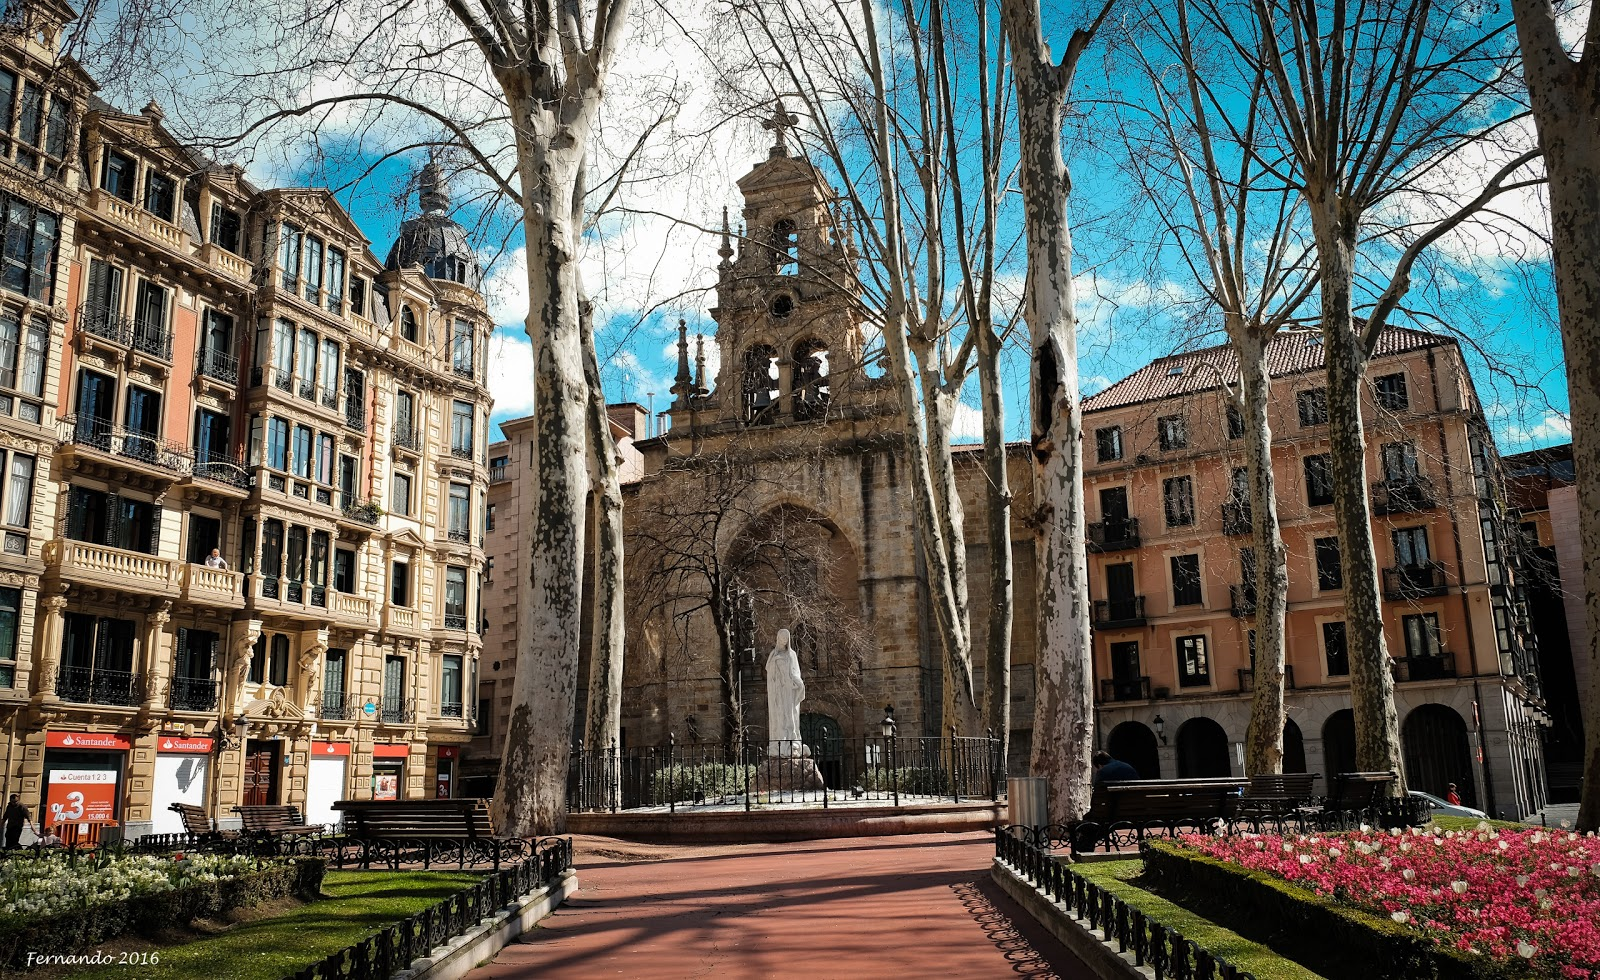 Visit Parroquia De San Vicente Mártir De Abando On Your Trip To Bilbao